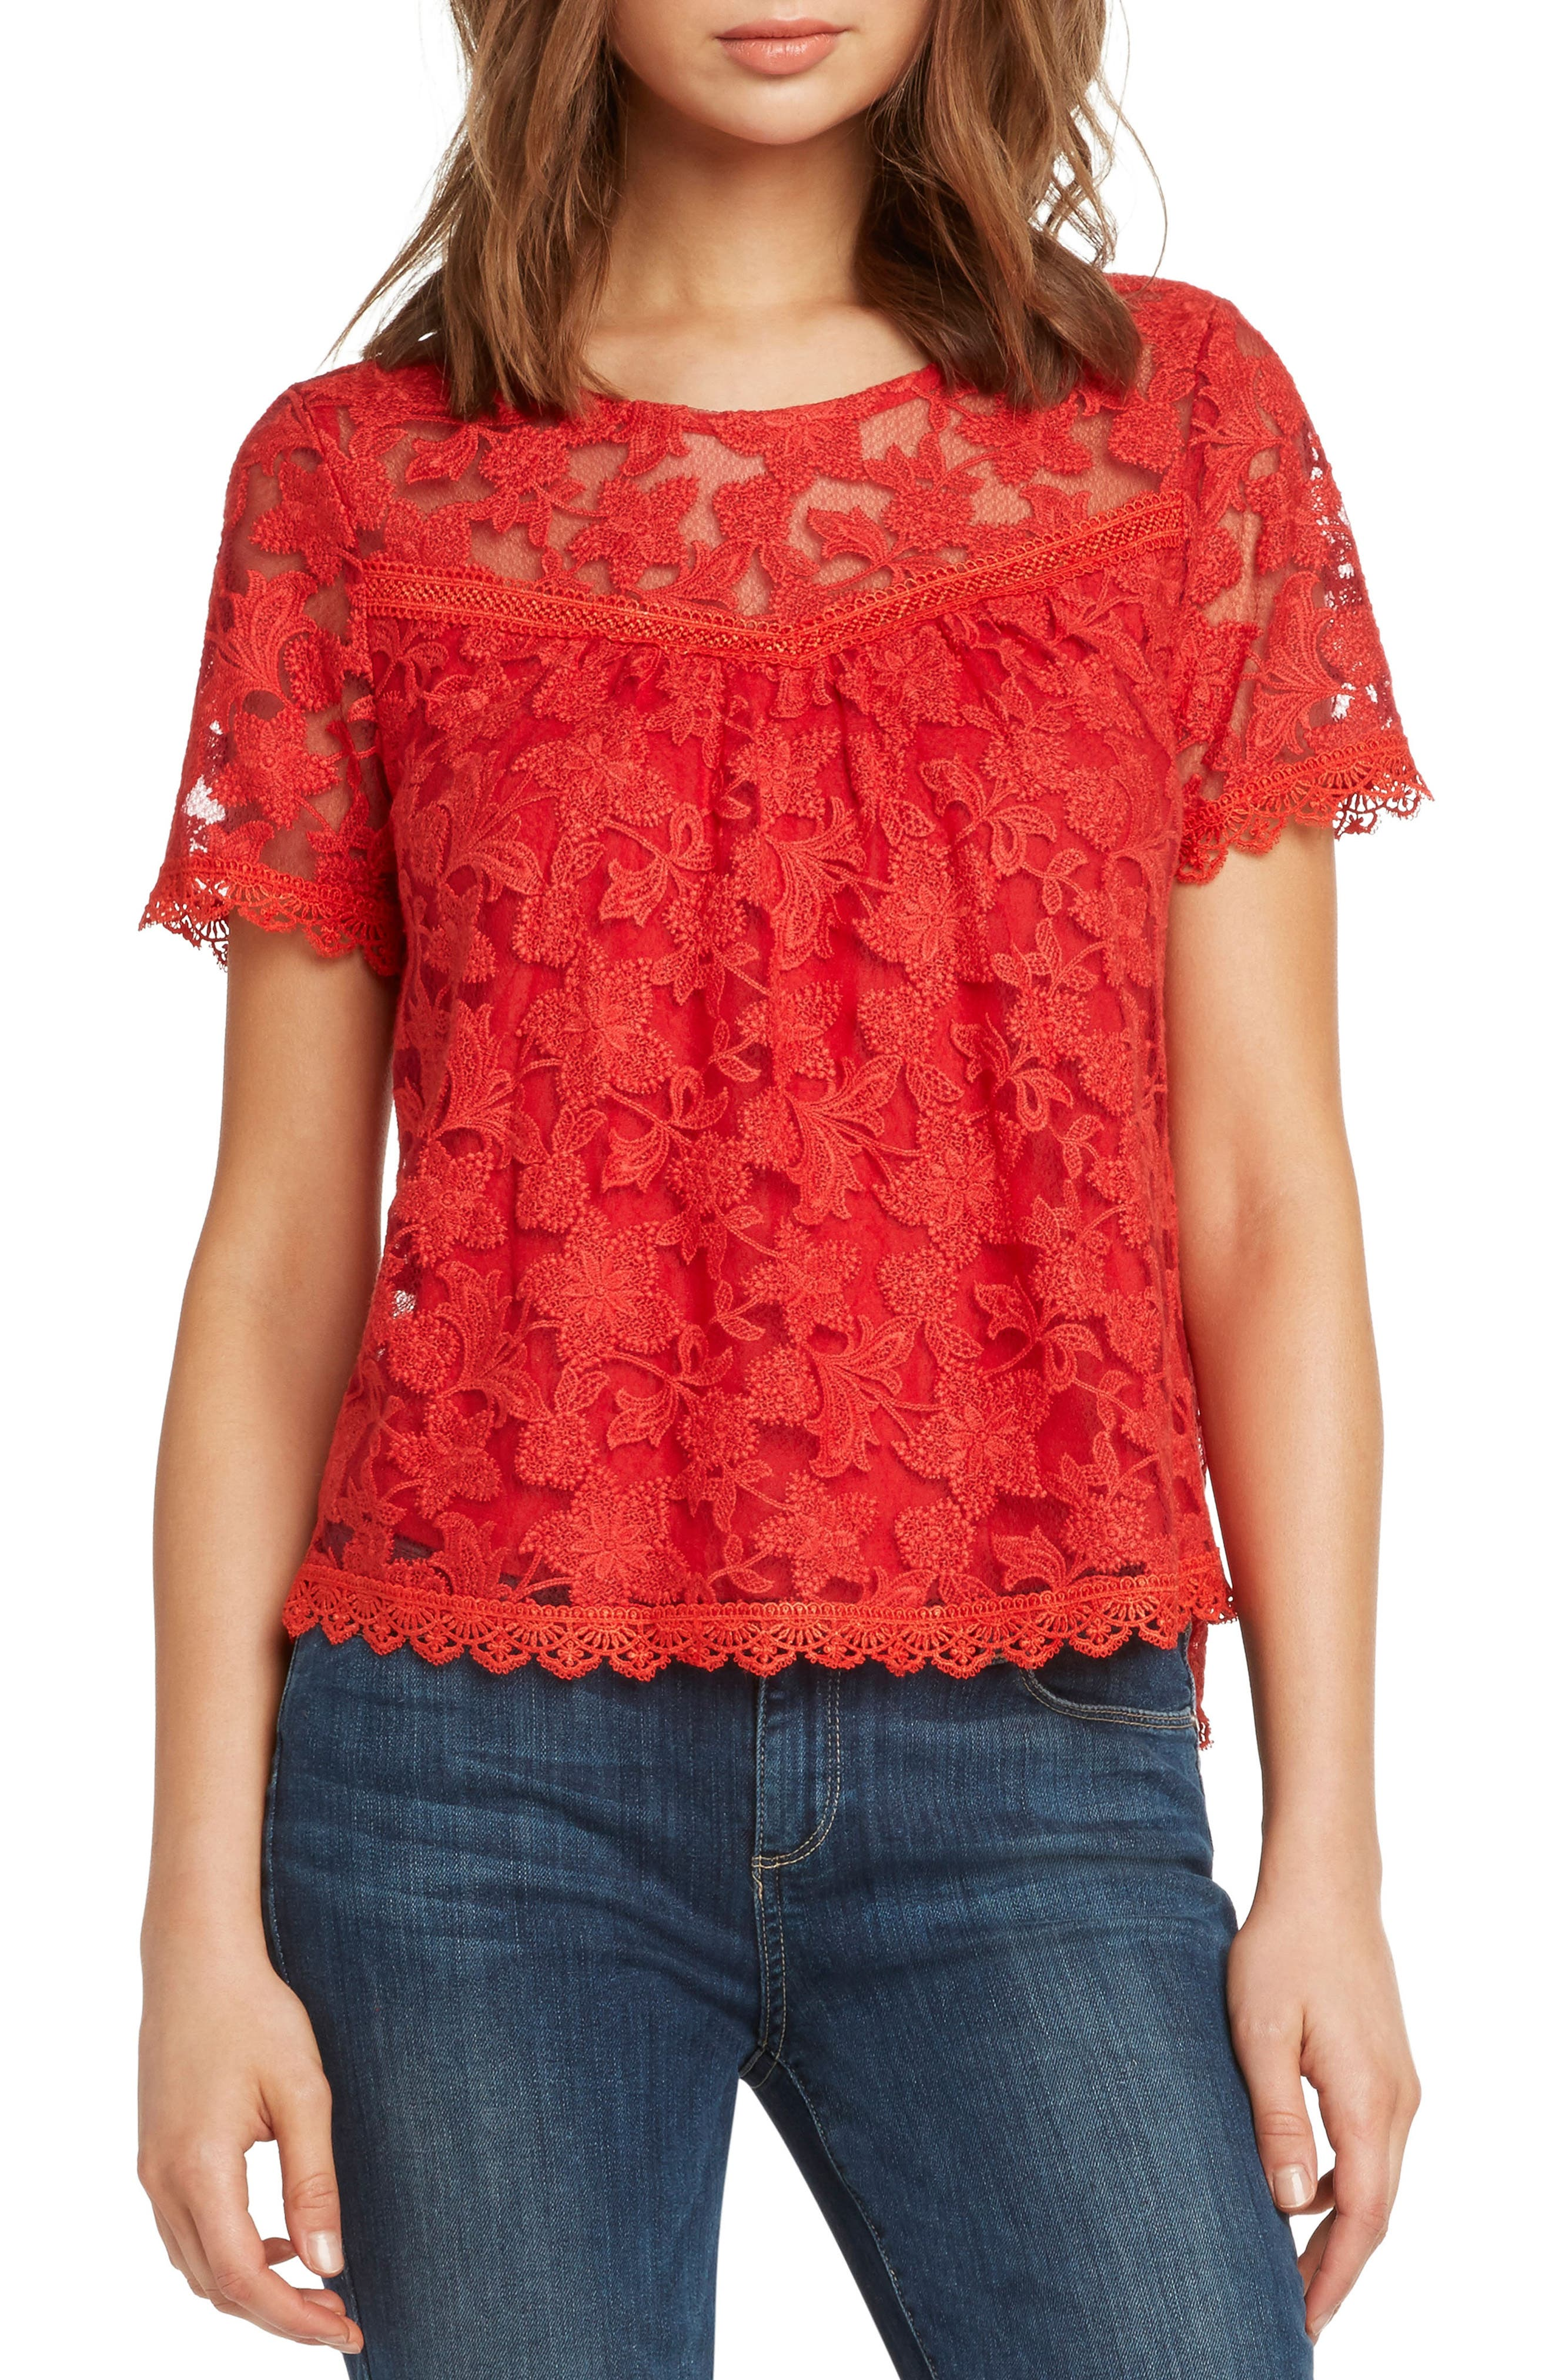 WILLOW & CLAY,                             Inset Detail Lace Top,                             Main thumbnail 1, color,                             643